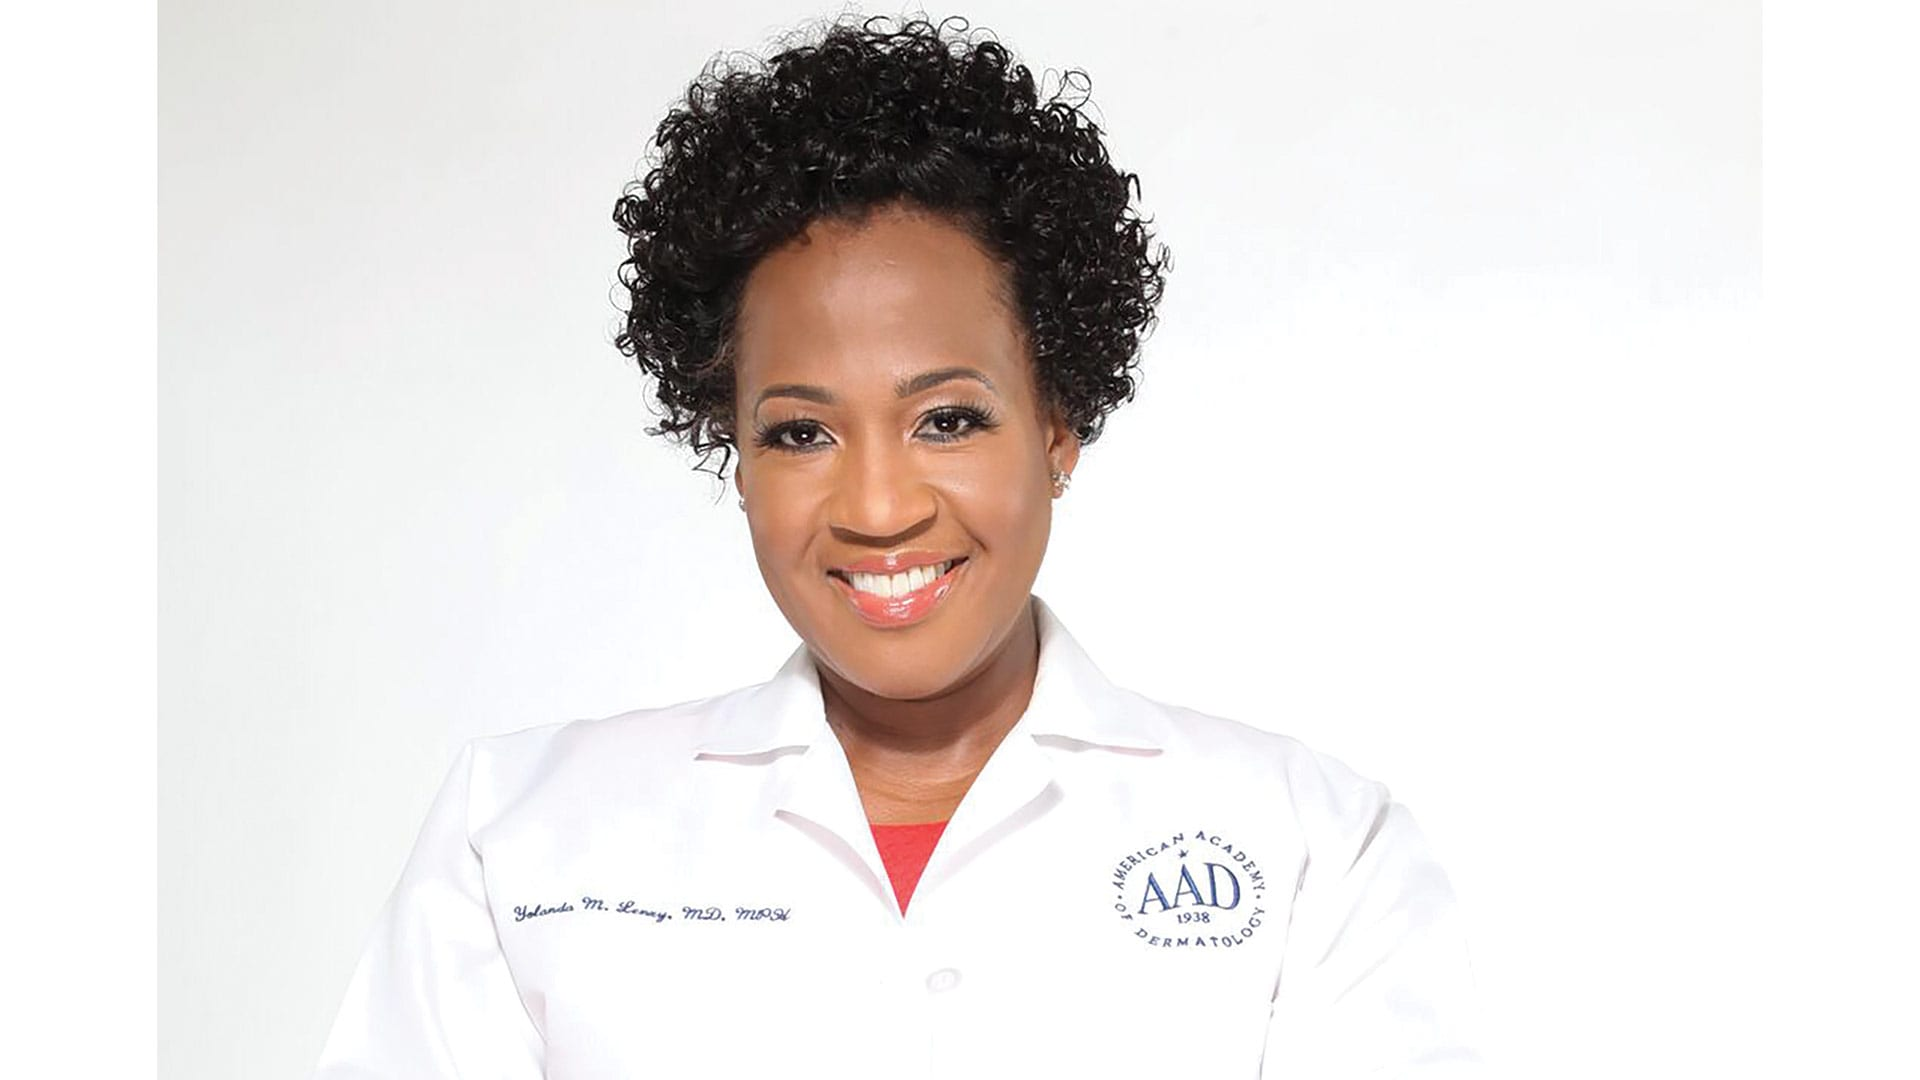 Dr. Yolanda Lenzy says patients' reluctance to come to the office out of fear of contracting COVID-19